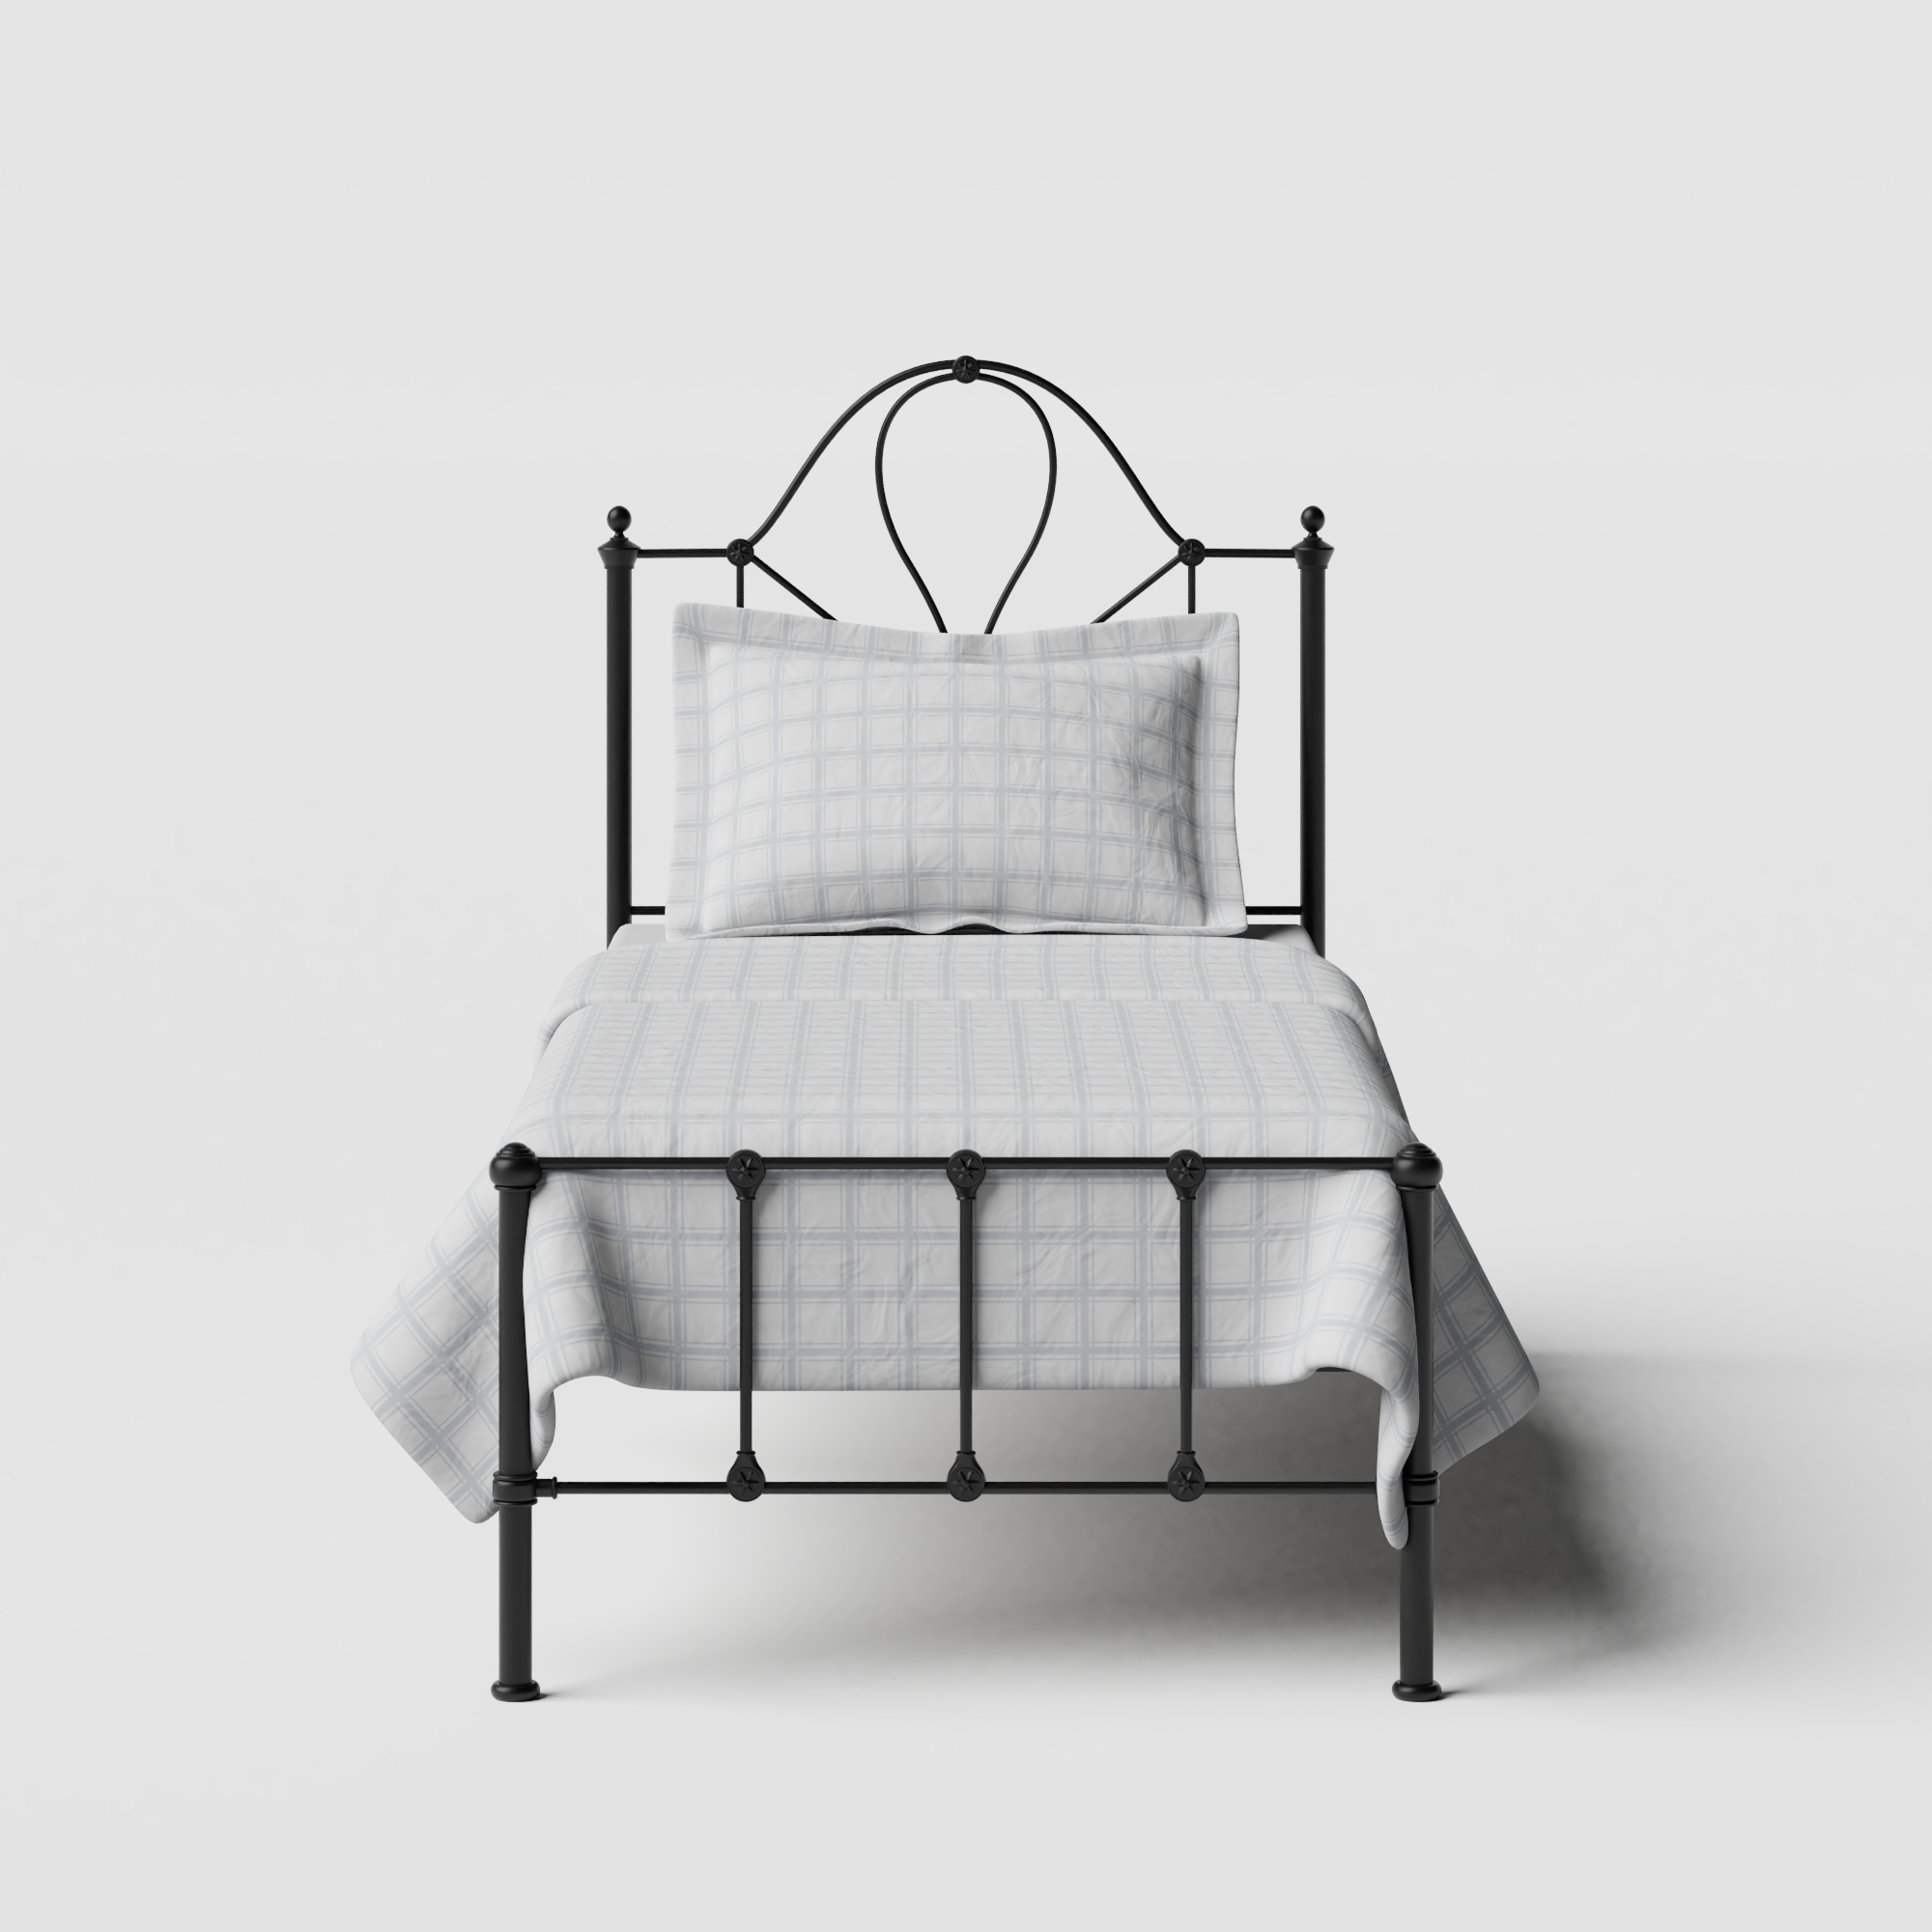 Athena iron/metal single bed in black